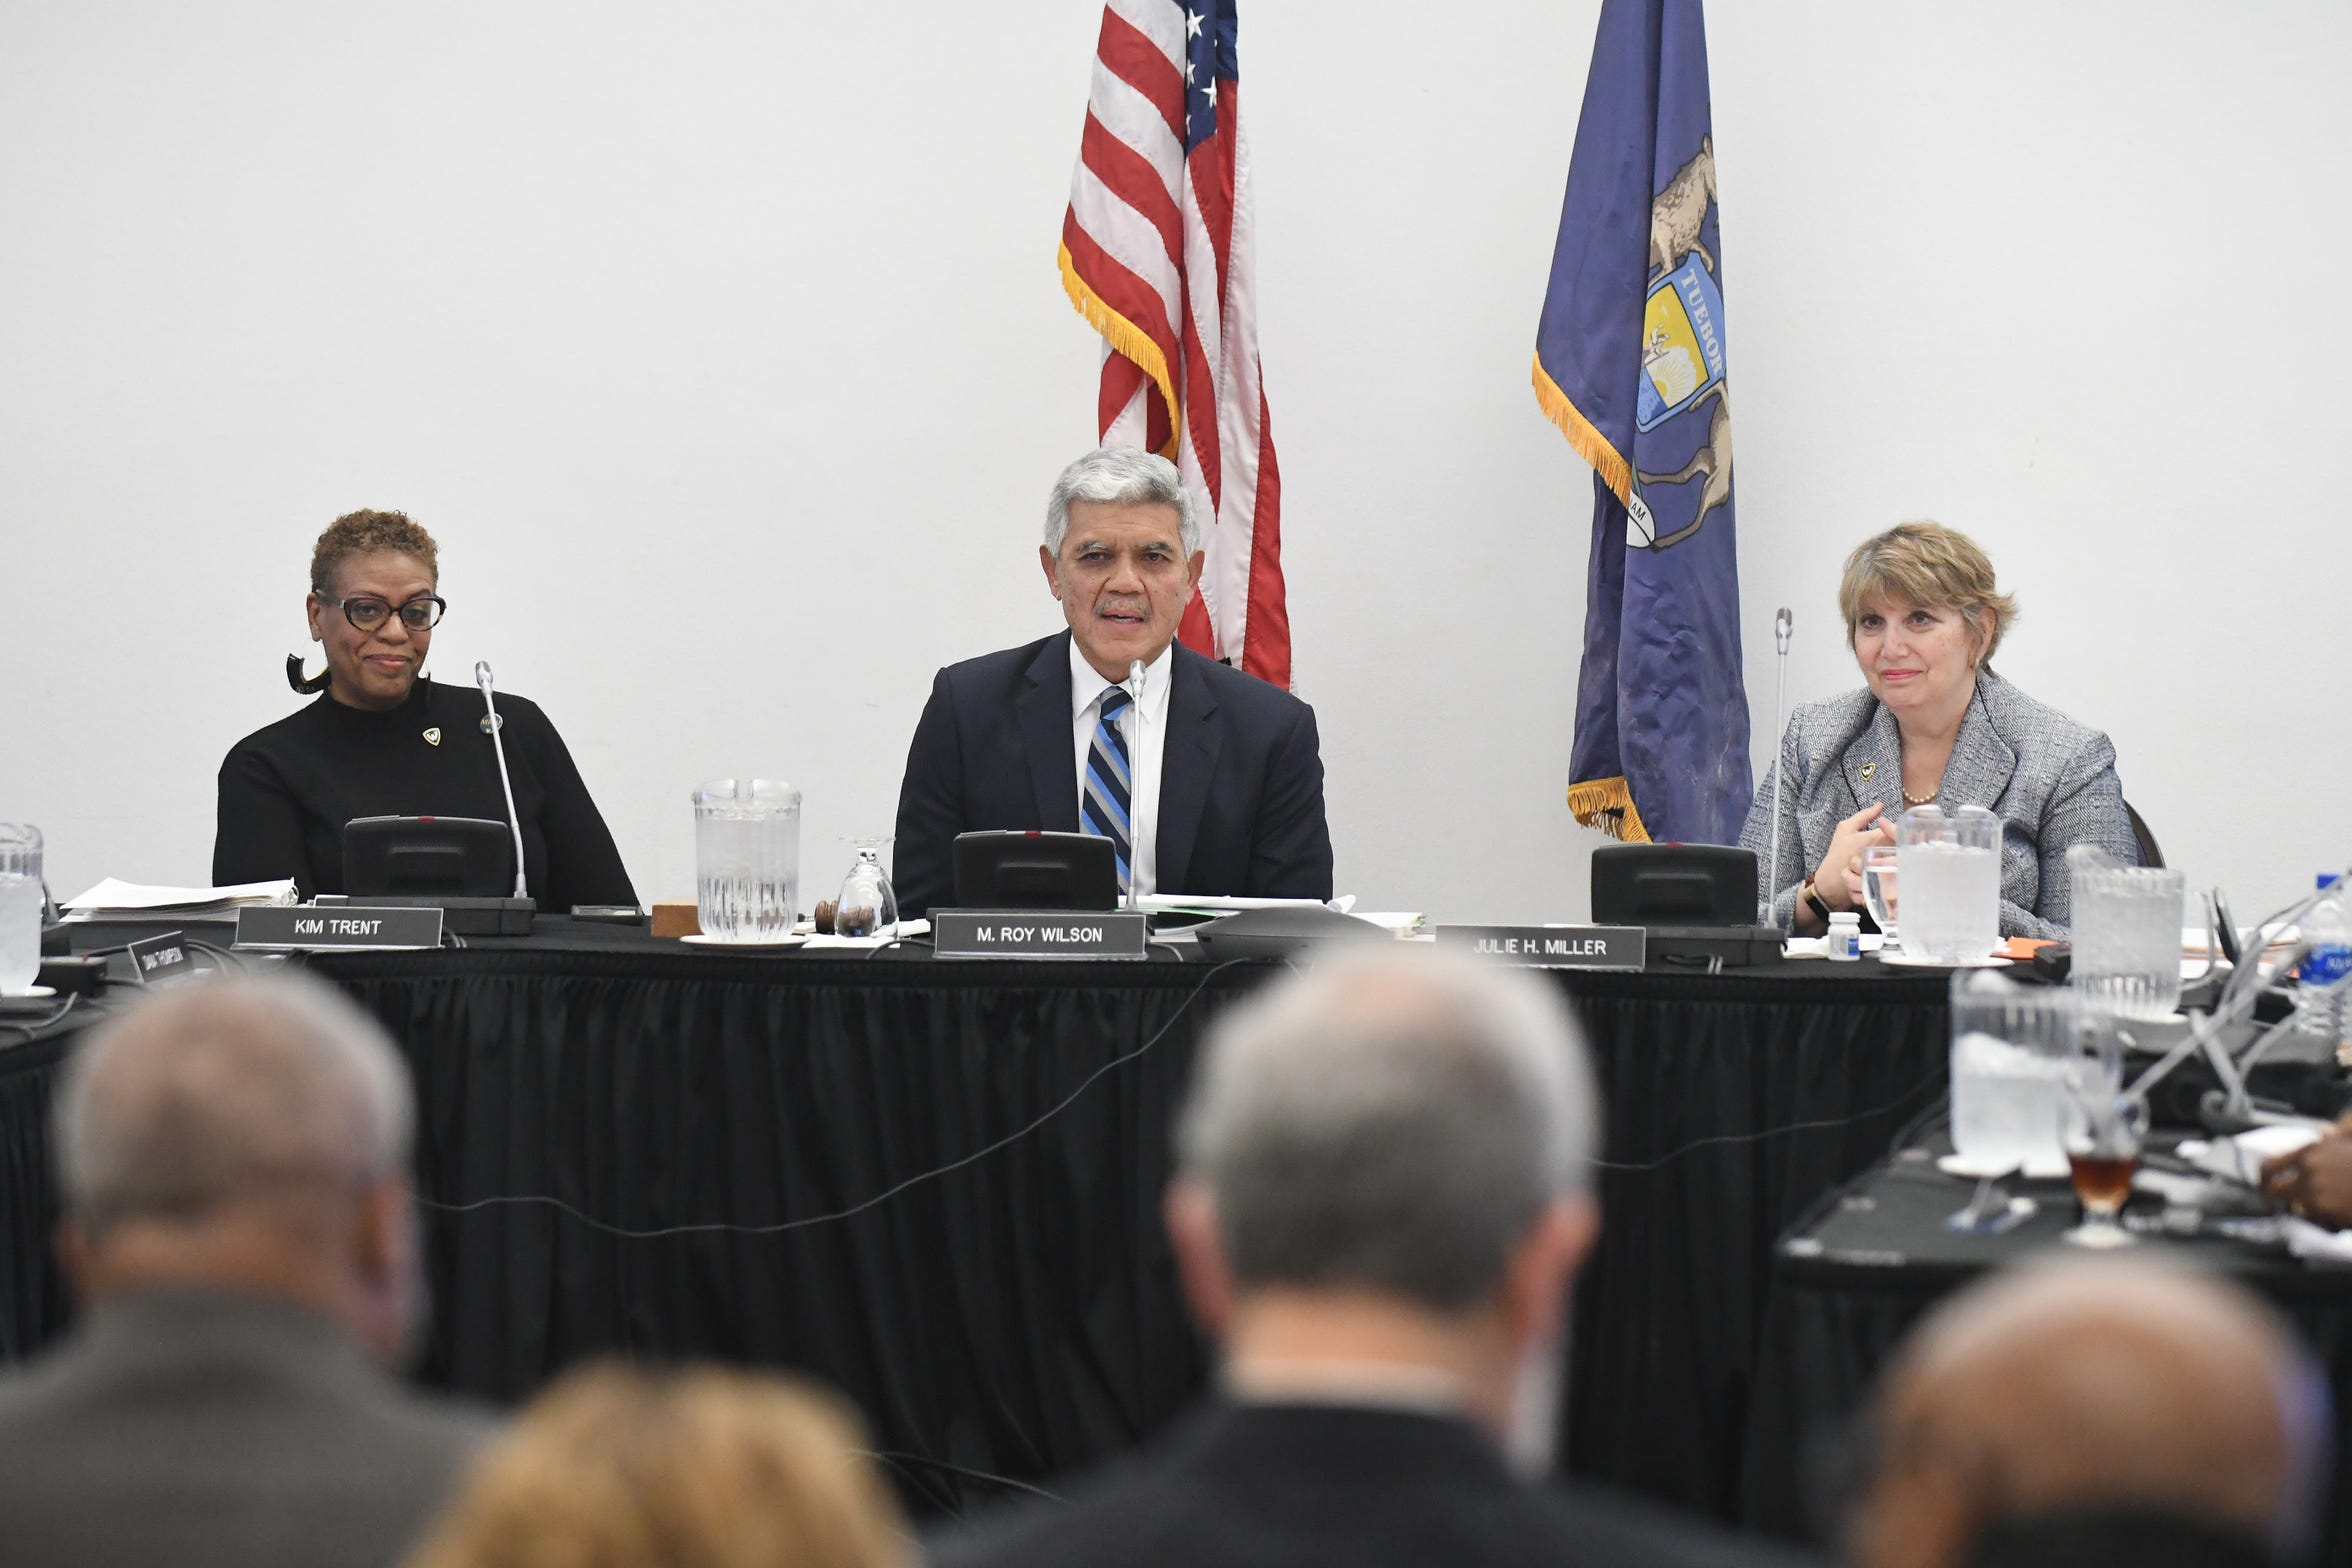 Wayne State University President Dr. M. Roy Wilson, center, speaks during a Board of Governors meeting with chair Kim Trent, left, and Secretary to the Board of Governors Julie Miller looking on.